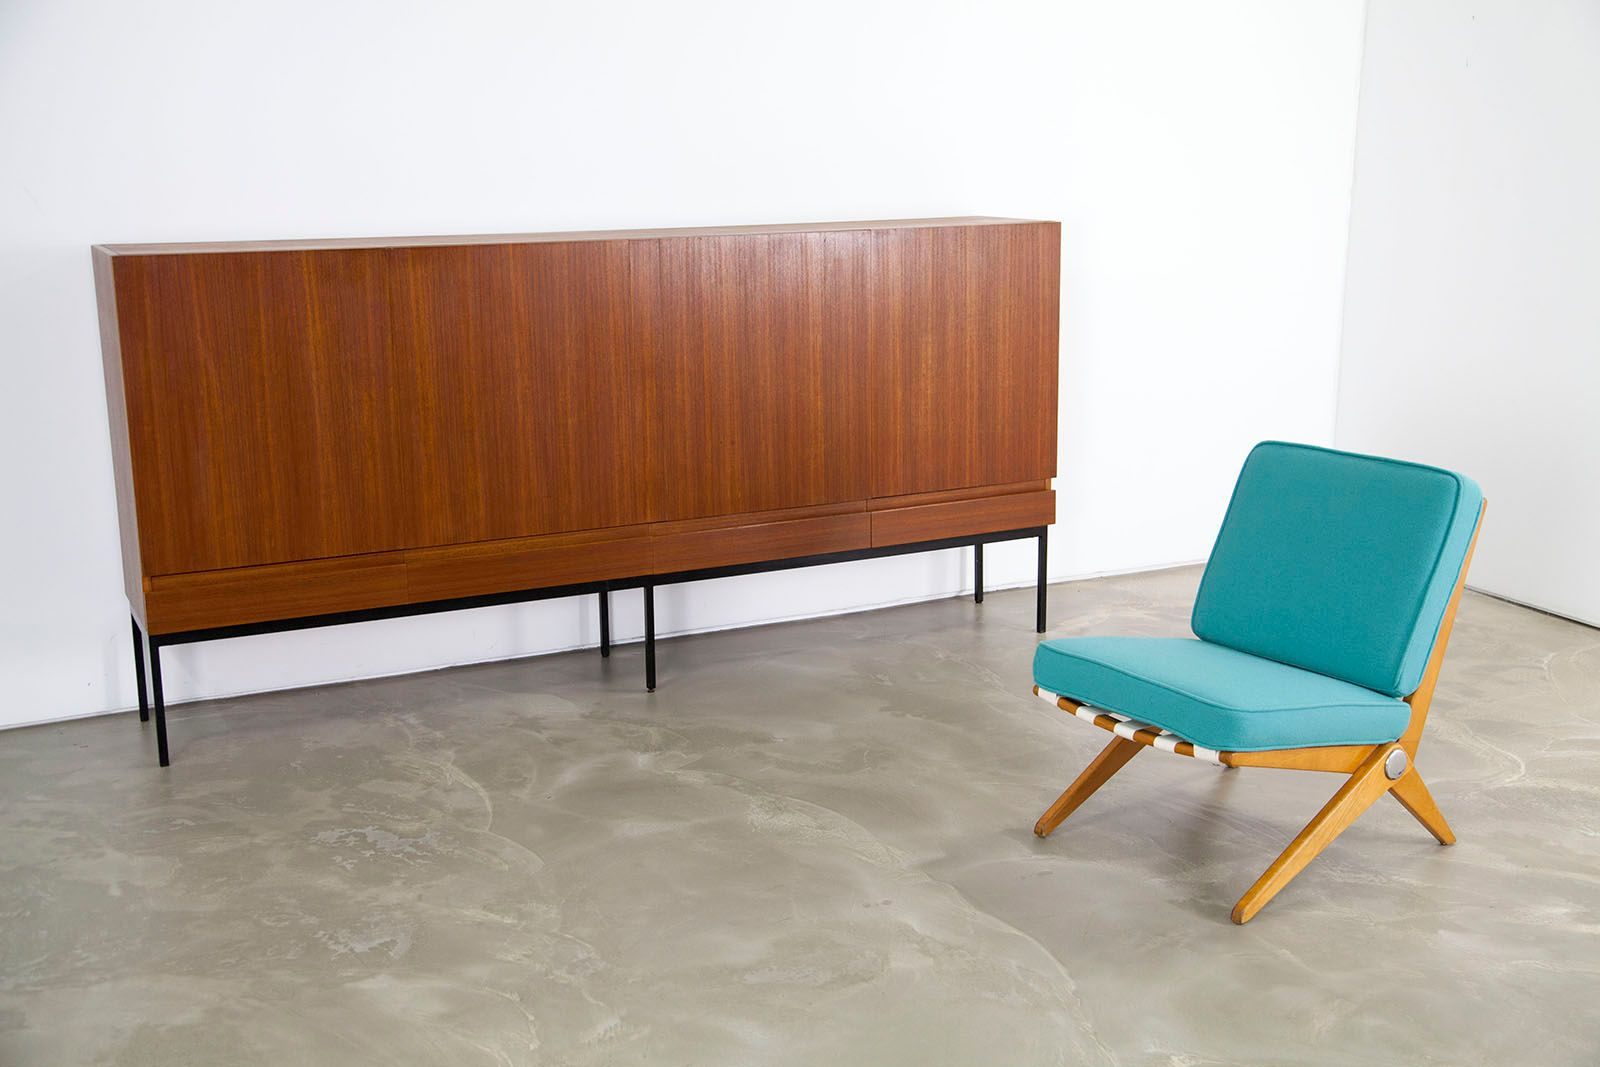 mid century b60 teak highboard by dieter waeckerlin for behr m bel 1958 for sale at pamono. Black Bedroom Furniture Sets. Home Design Ideas